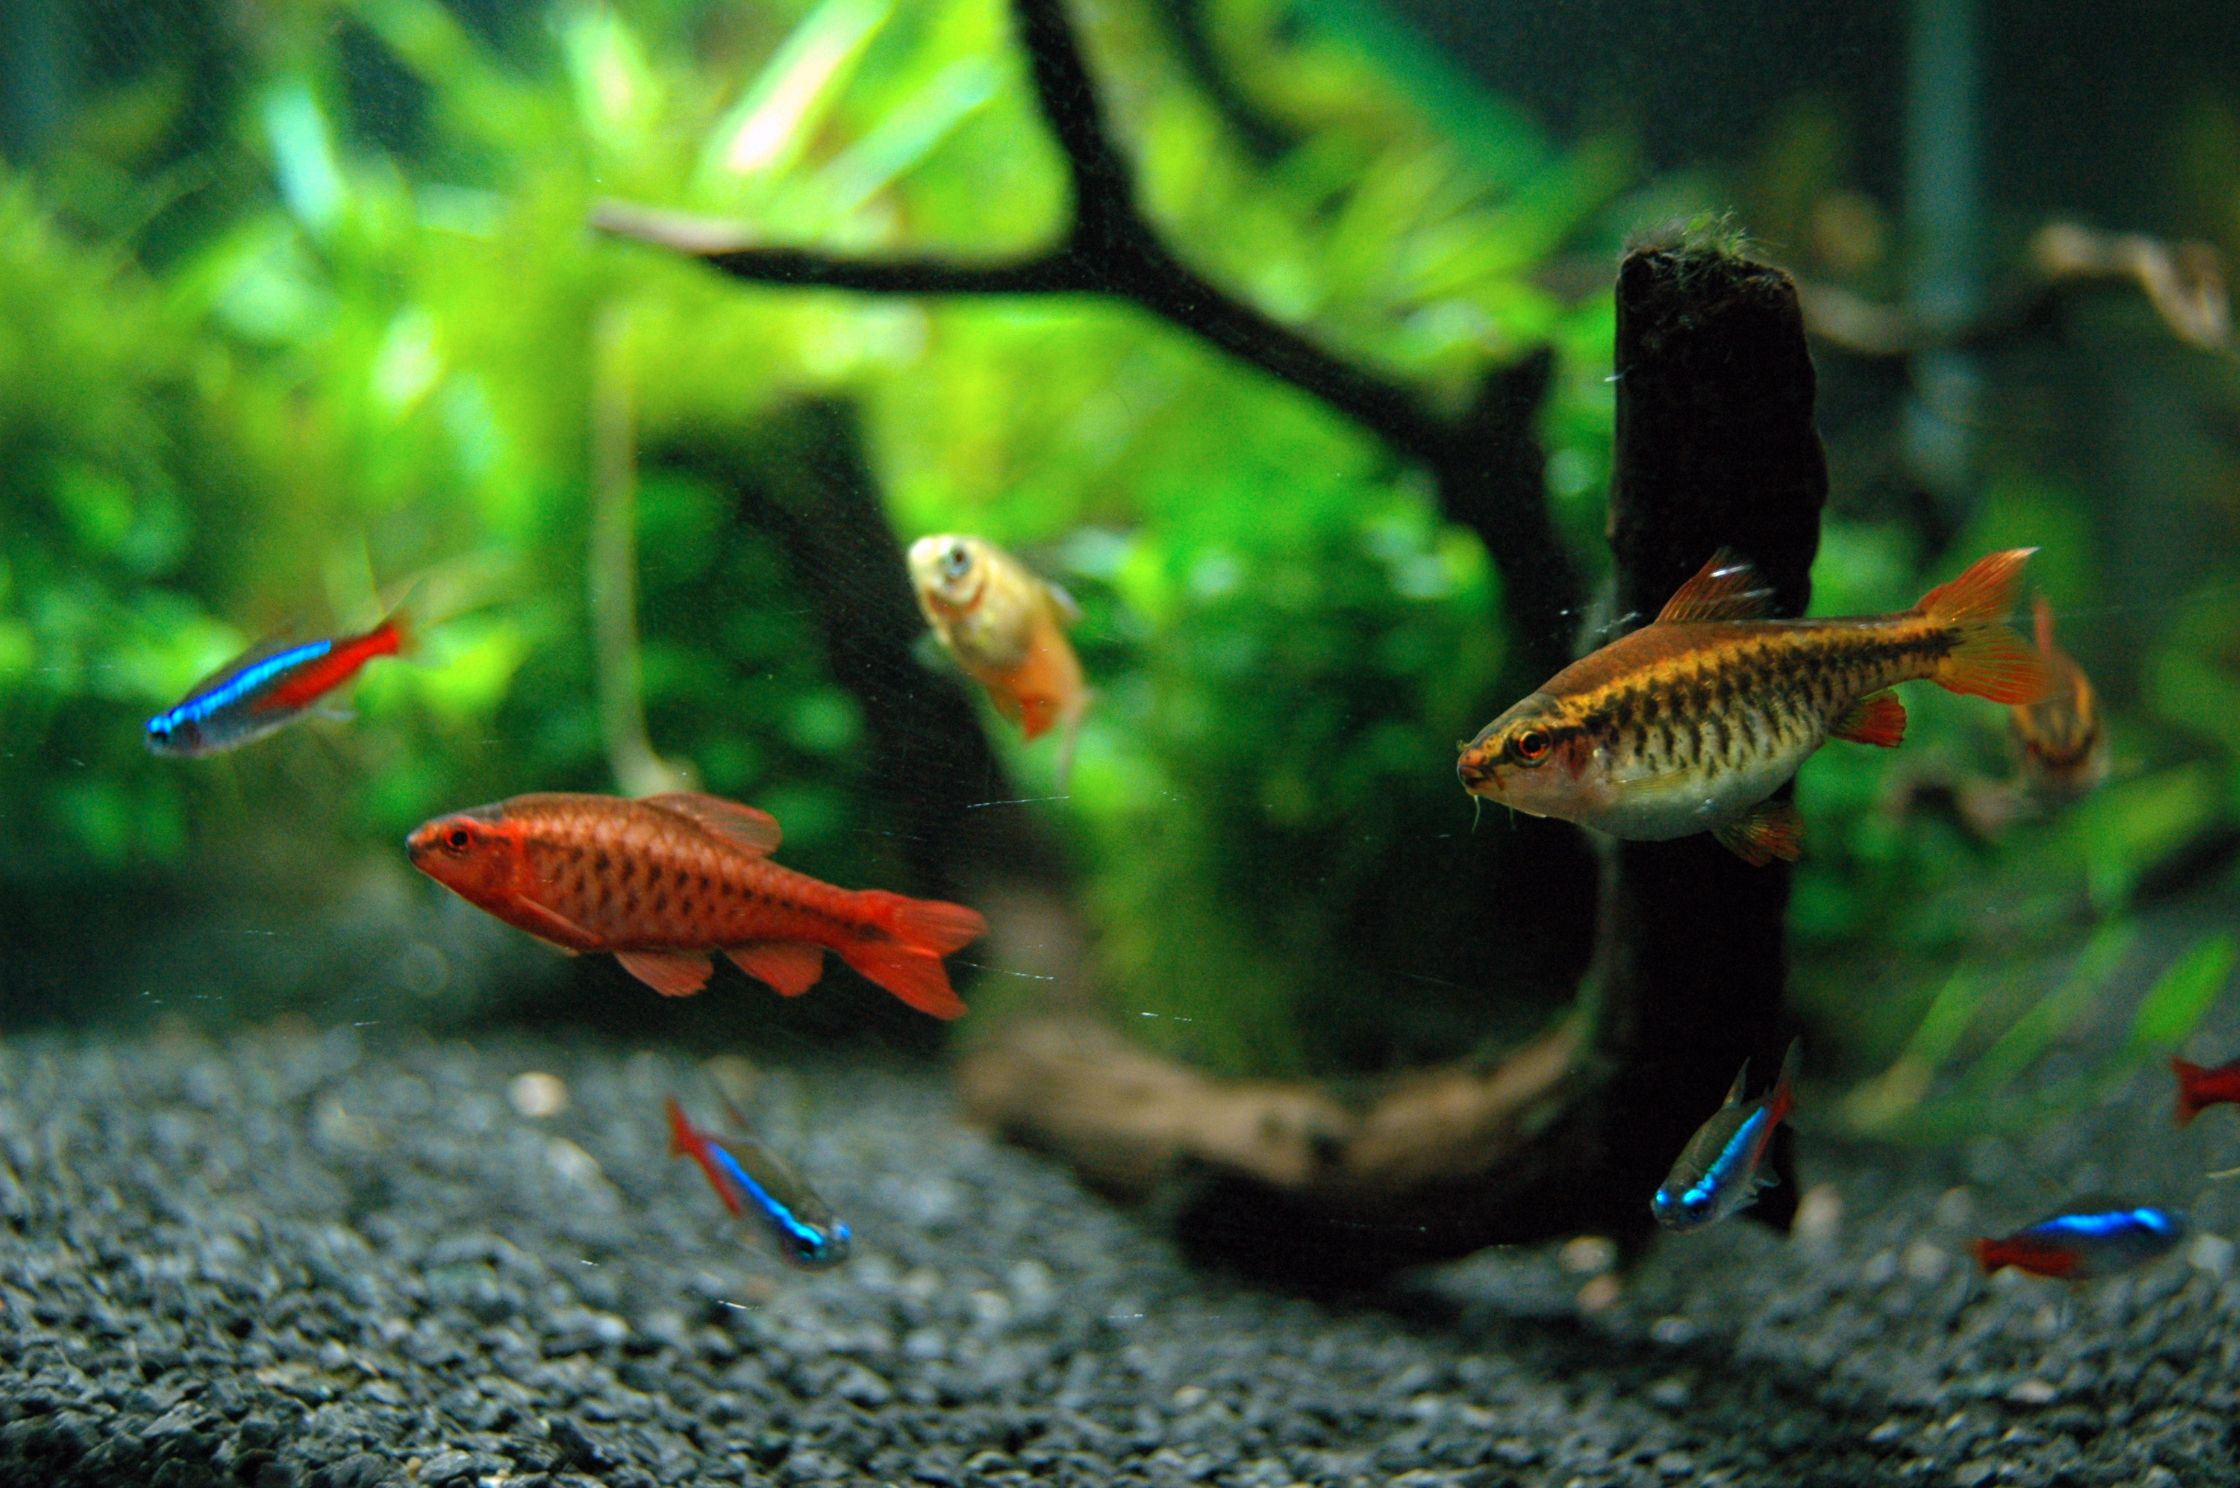 Good first fish for your home aquarium for Exotic fish tanks